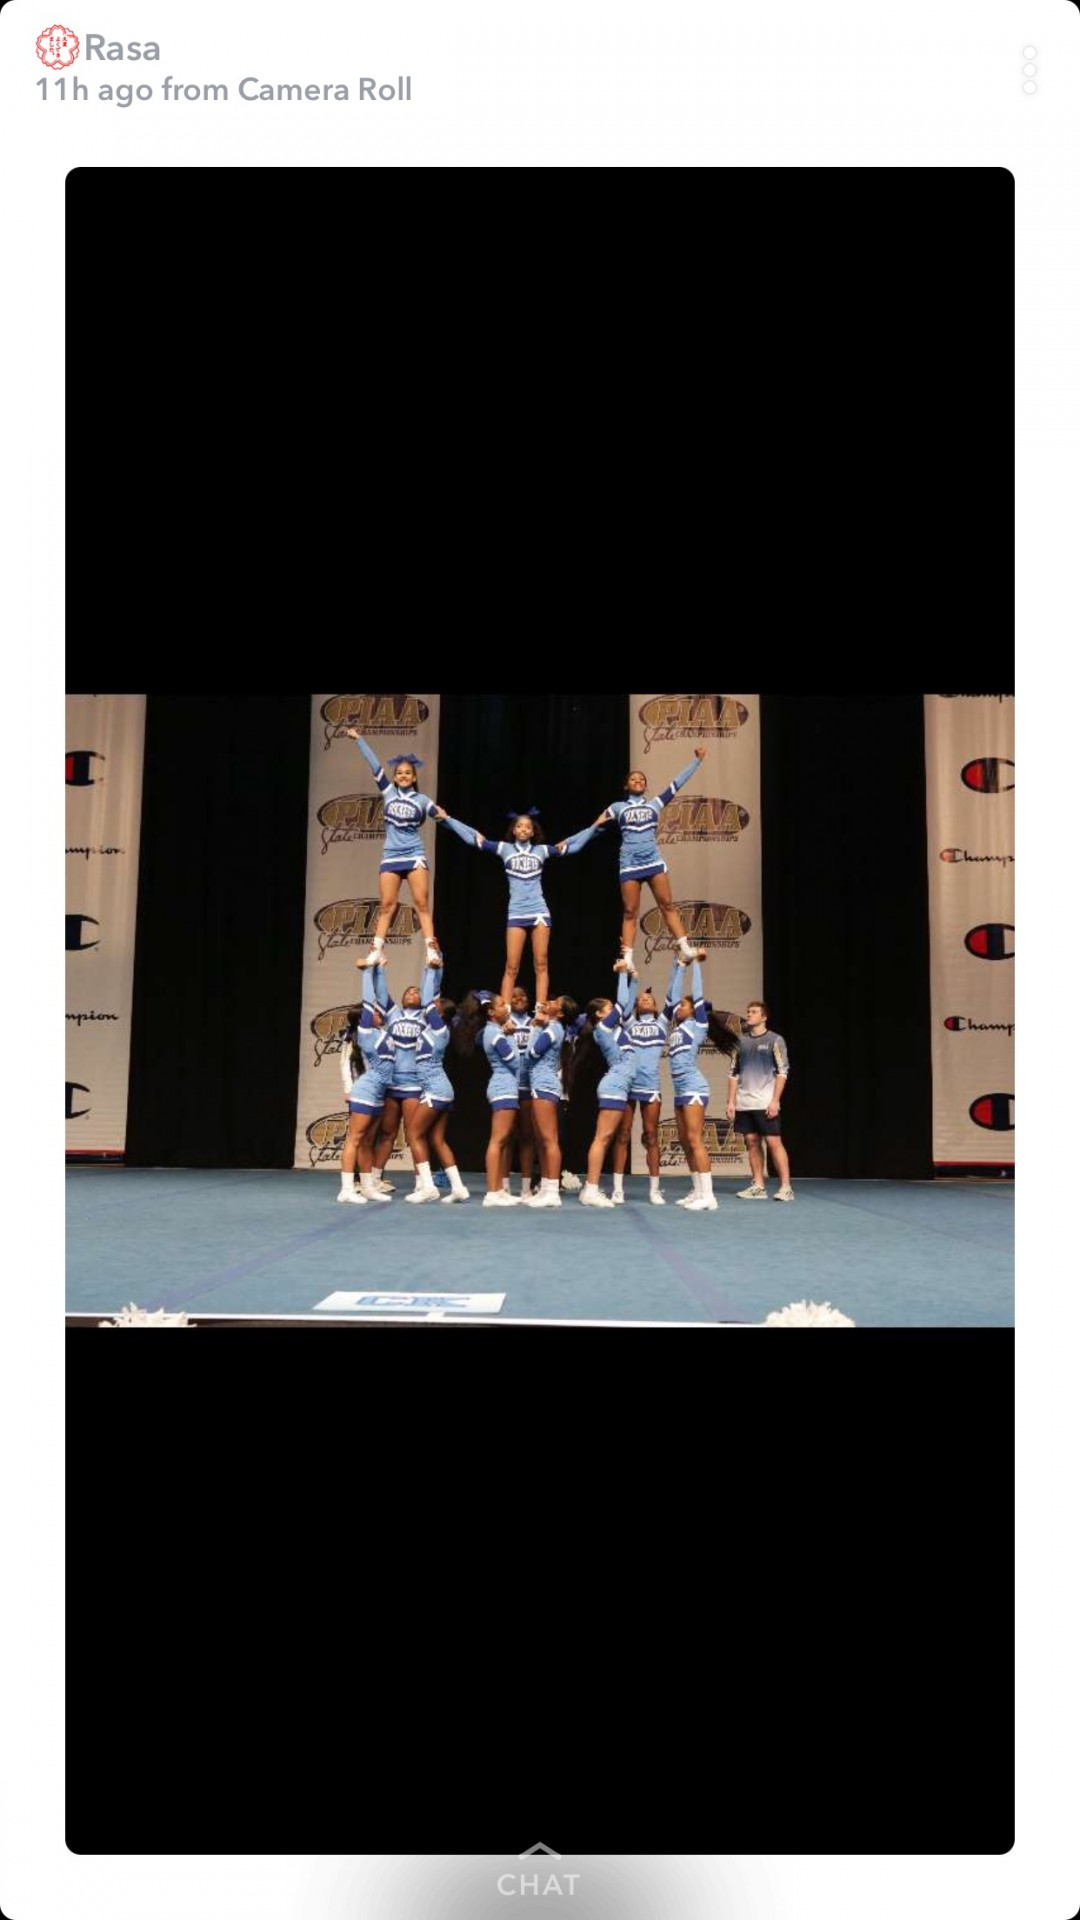 This was our cheerleading competition for States in Hershey, Pennsylvania.